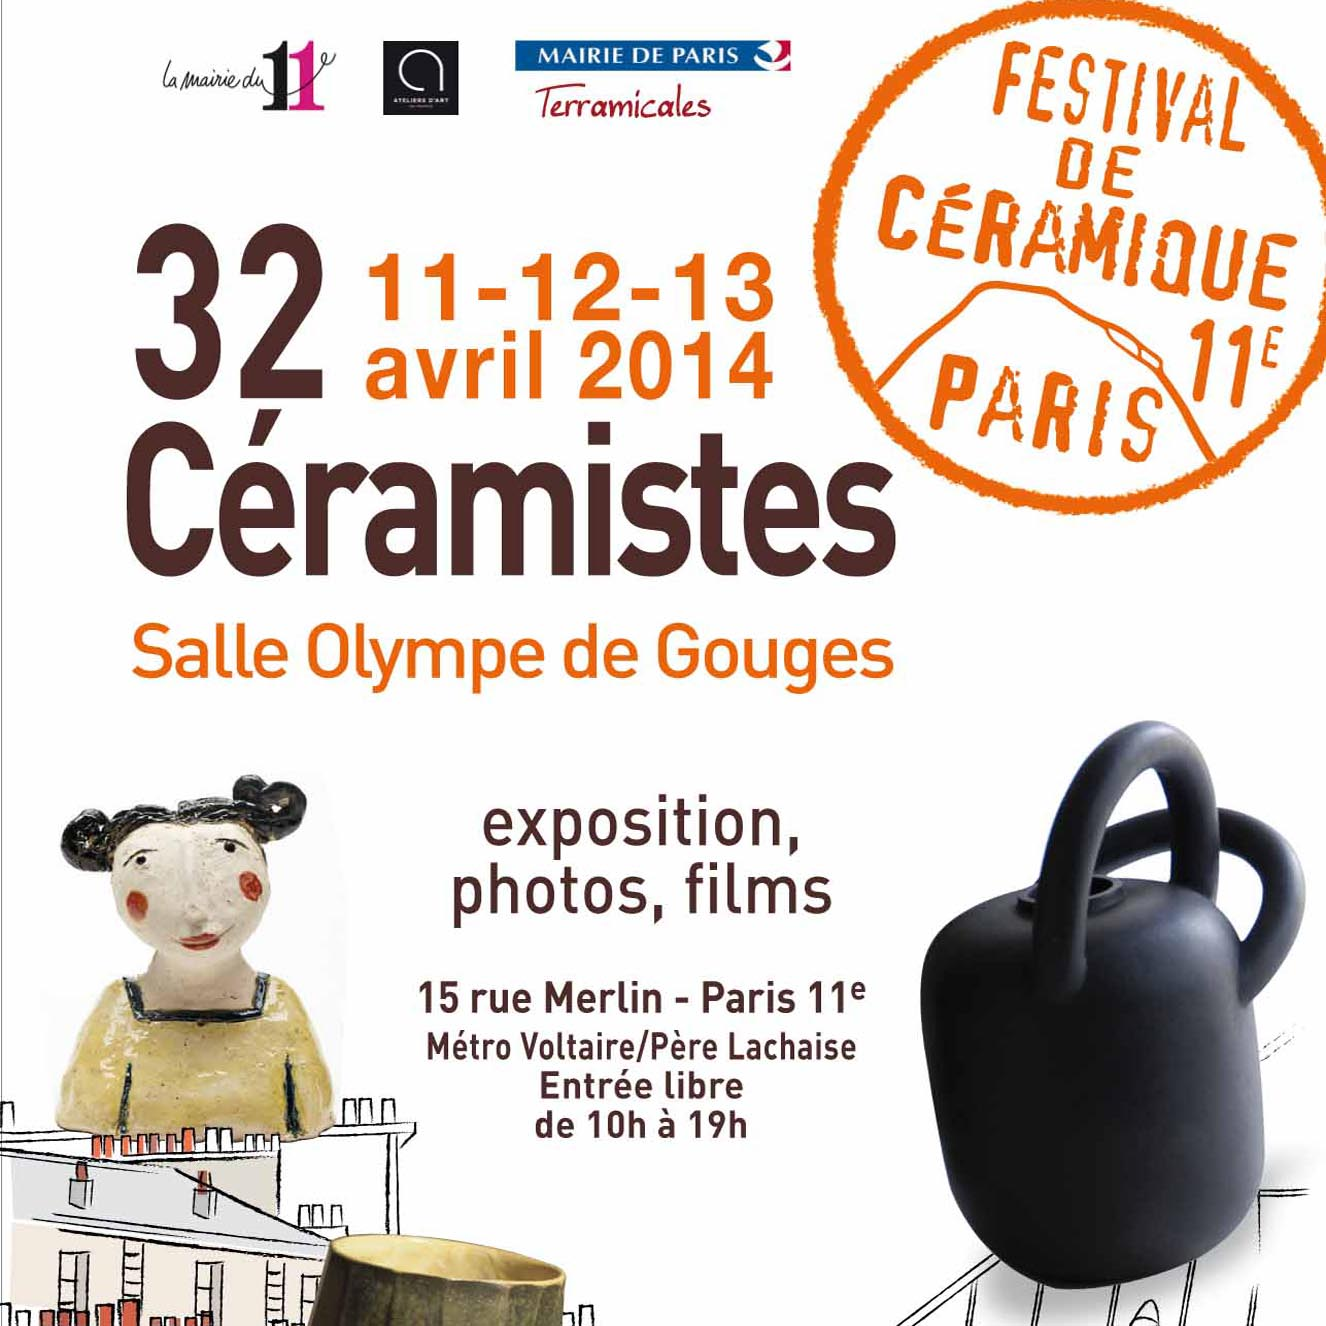 flyer-festival-ceramique-paris11